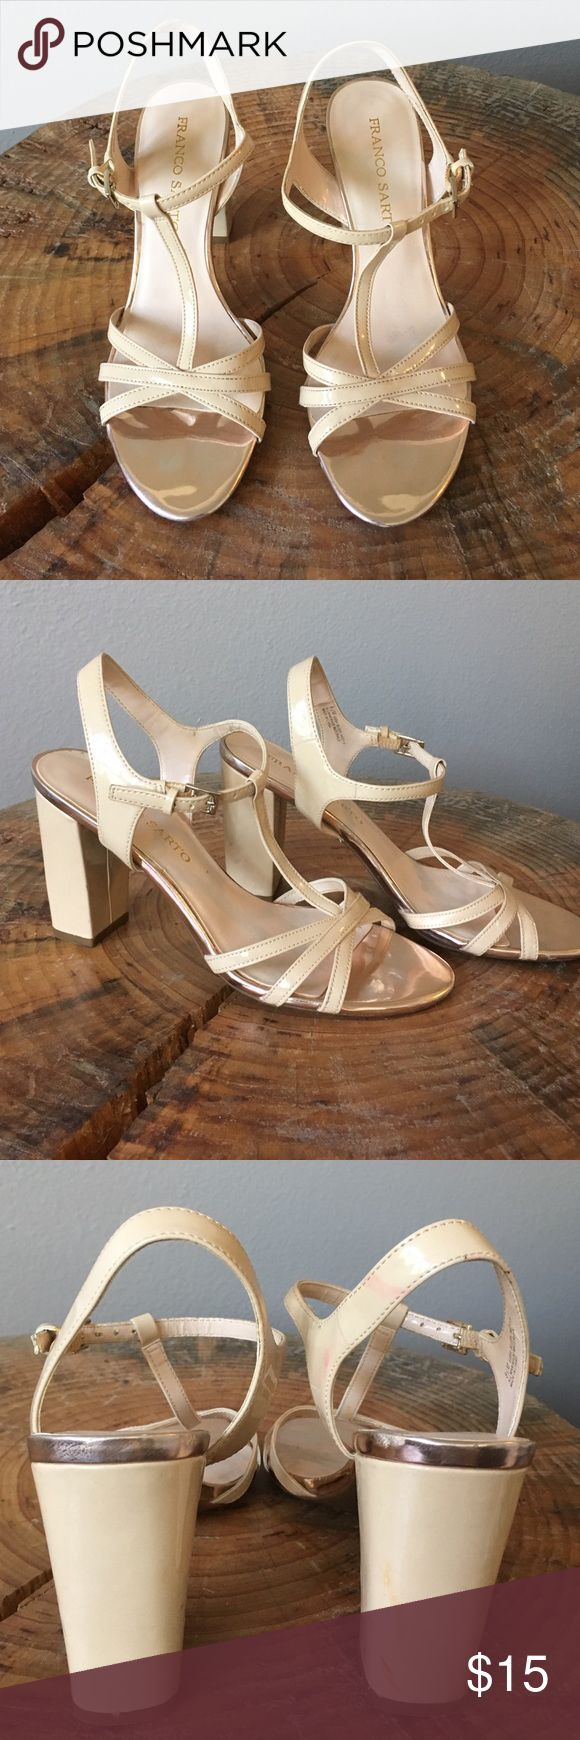 Frank Sarto T strap sandals These beautiful neutral sandals were only worn once at a wedding. There are some slight markings on the heels (as shown in the picture) but otherwise they're in excellent like new condition Frank Sarto Shoes Heels